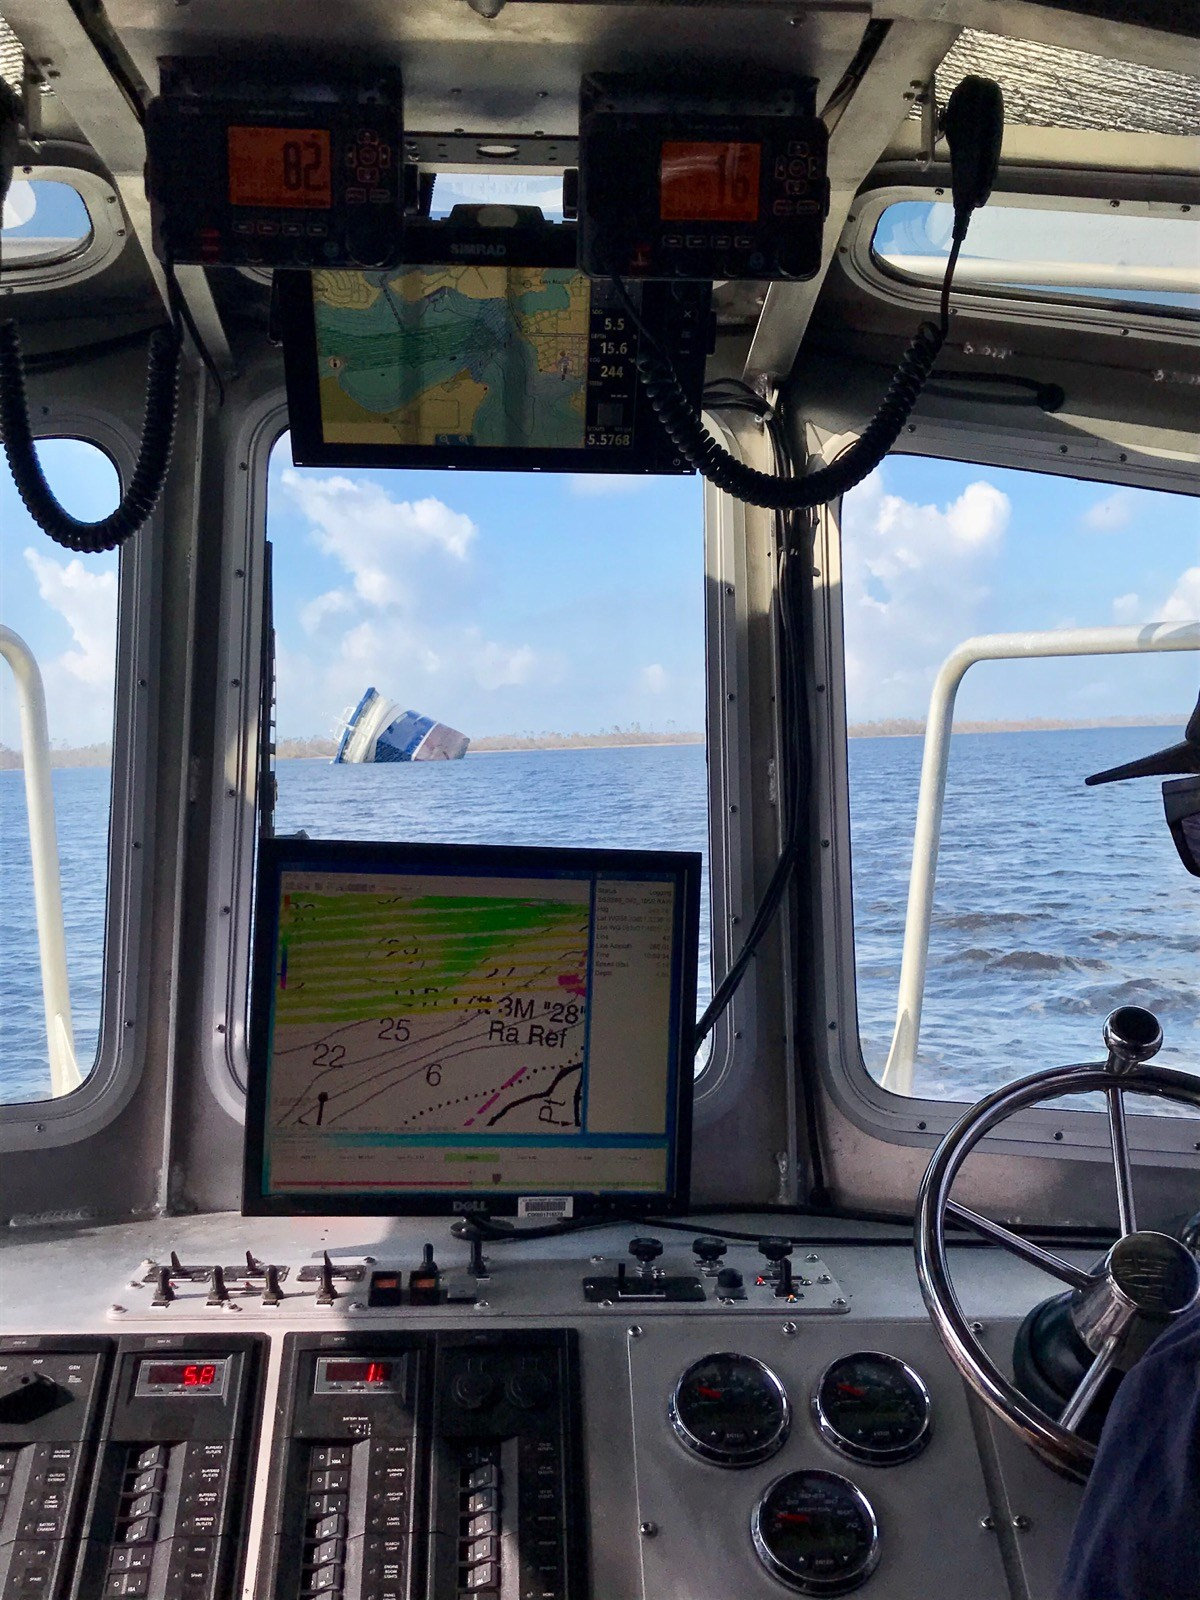 Surveying Shipping Hazards After Hurricane Michael